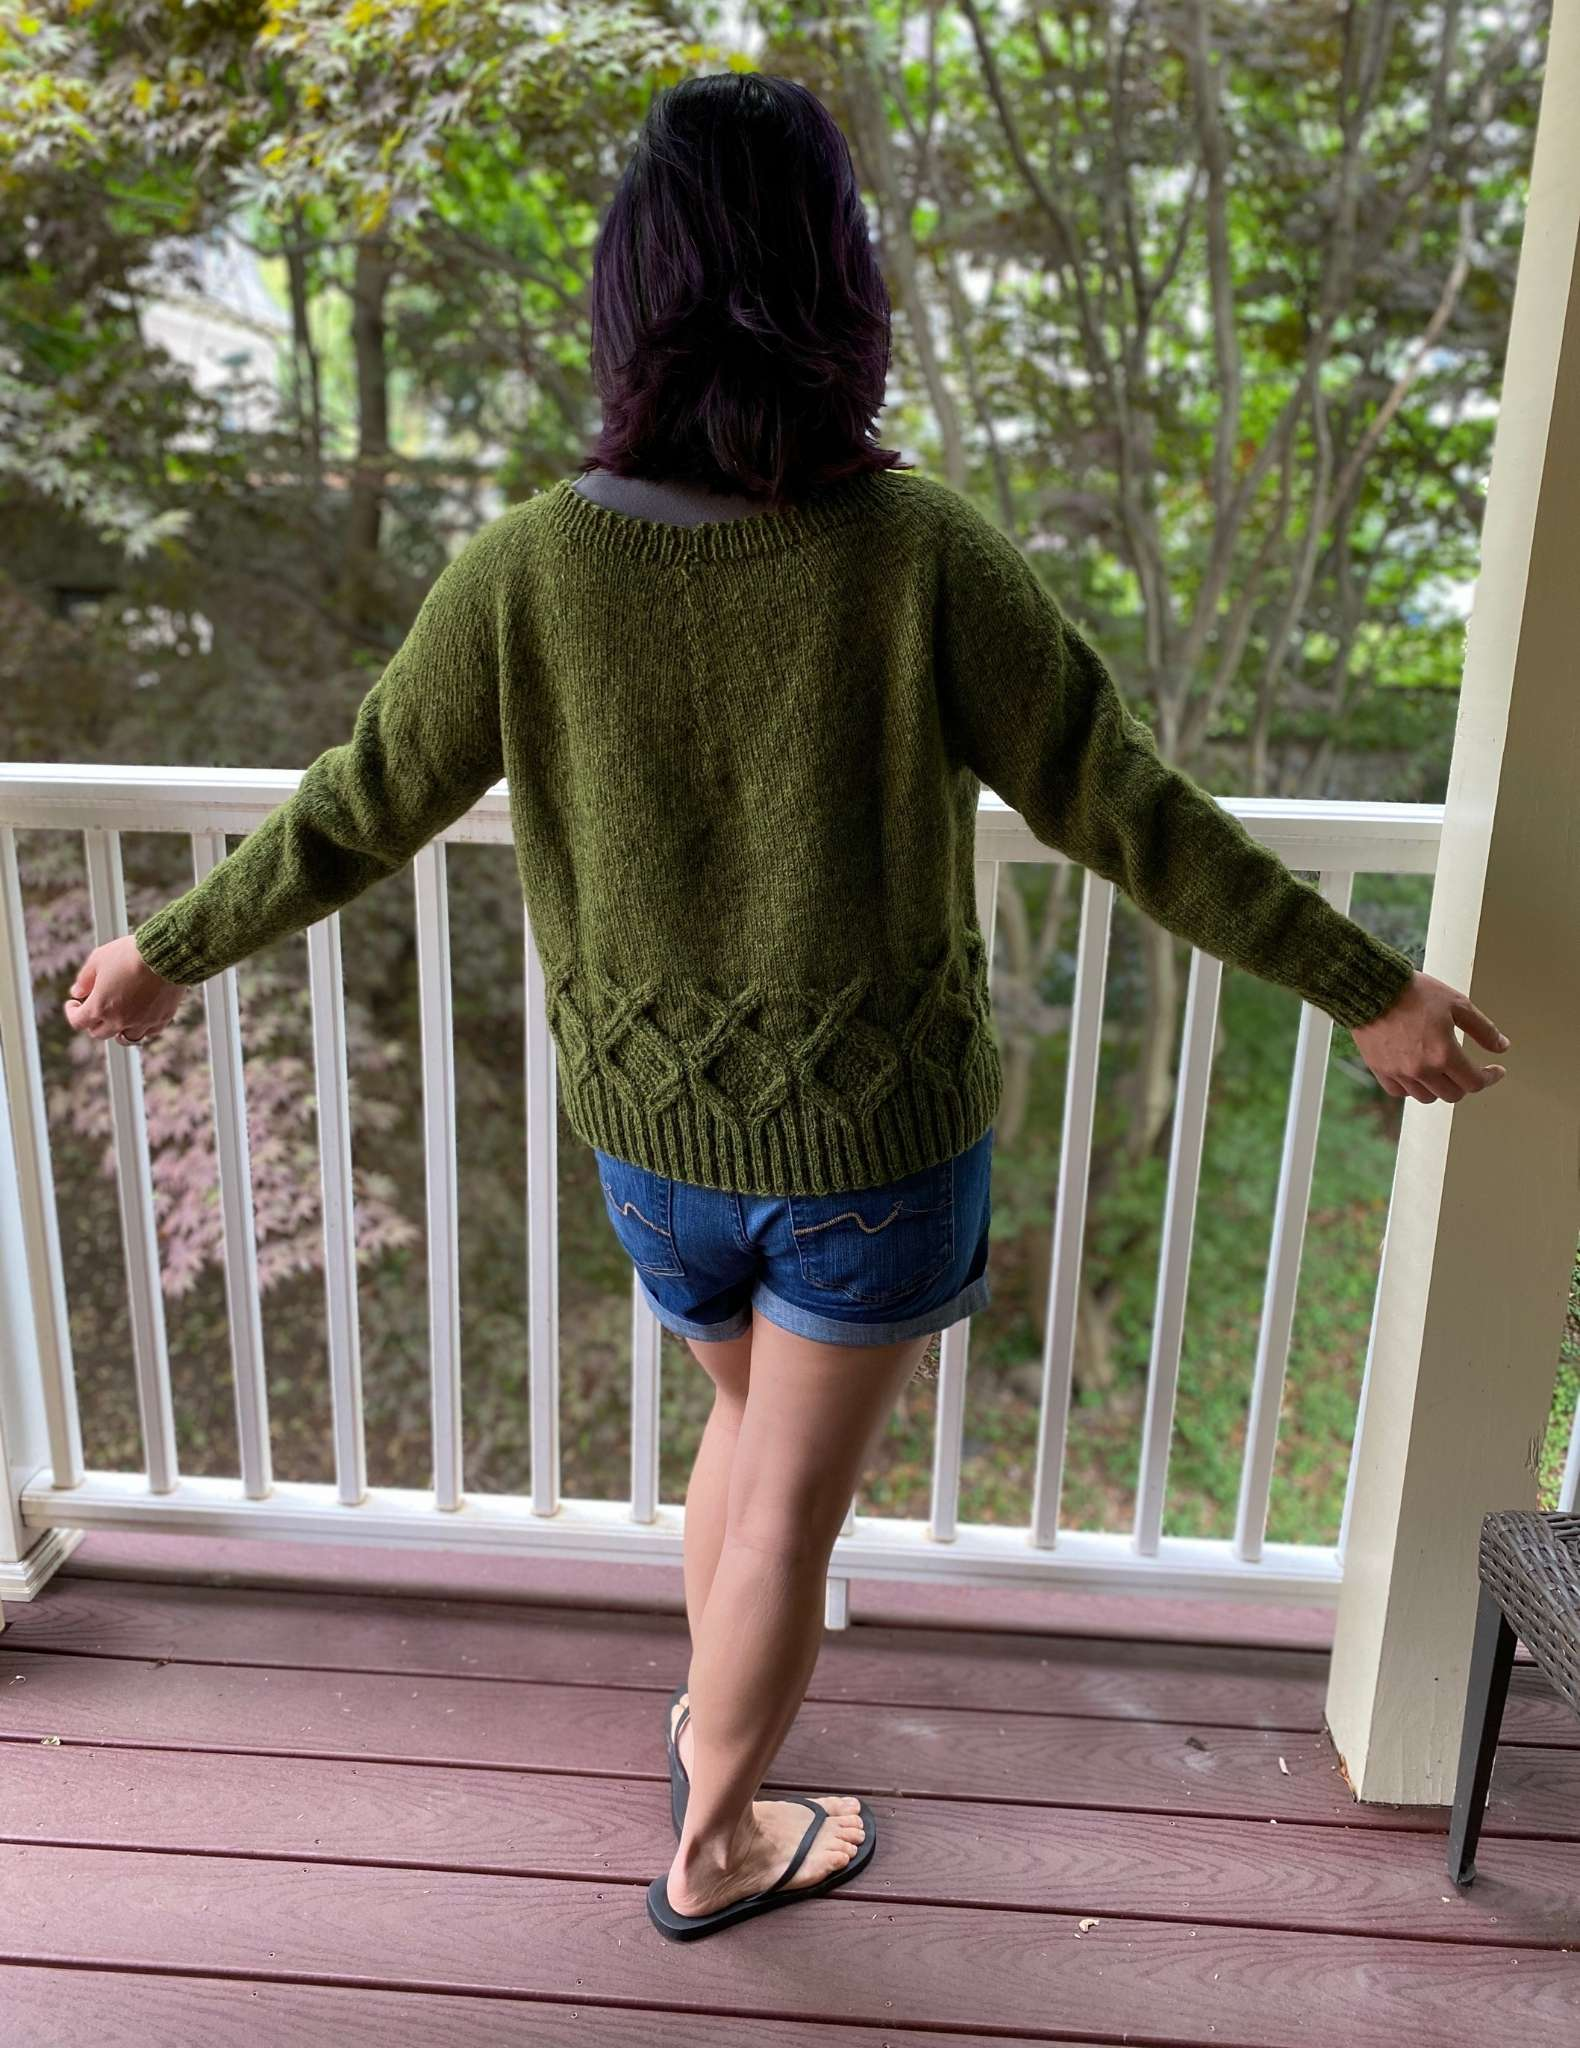 The back of an Asian female model wearing a green sweater and shorts, with arms outstretched